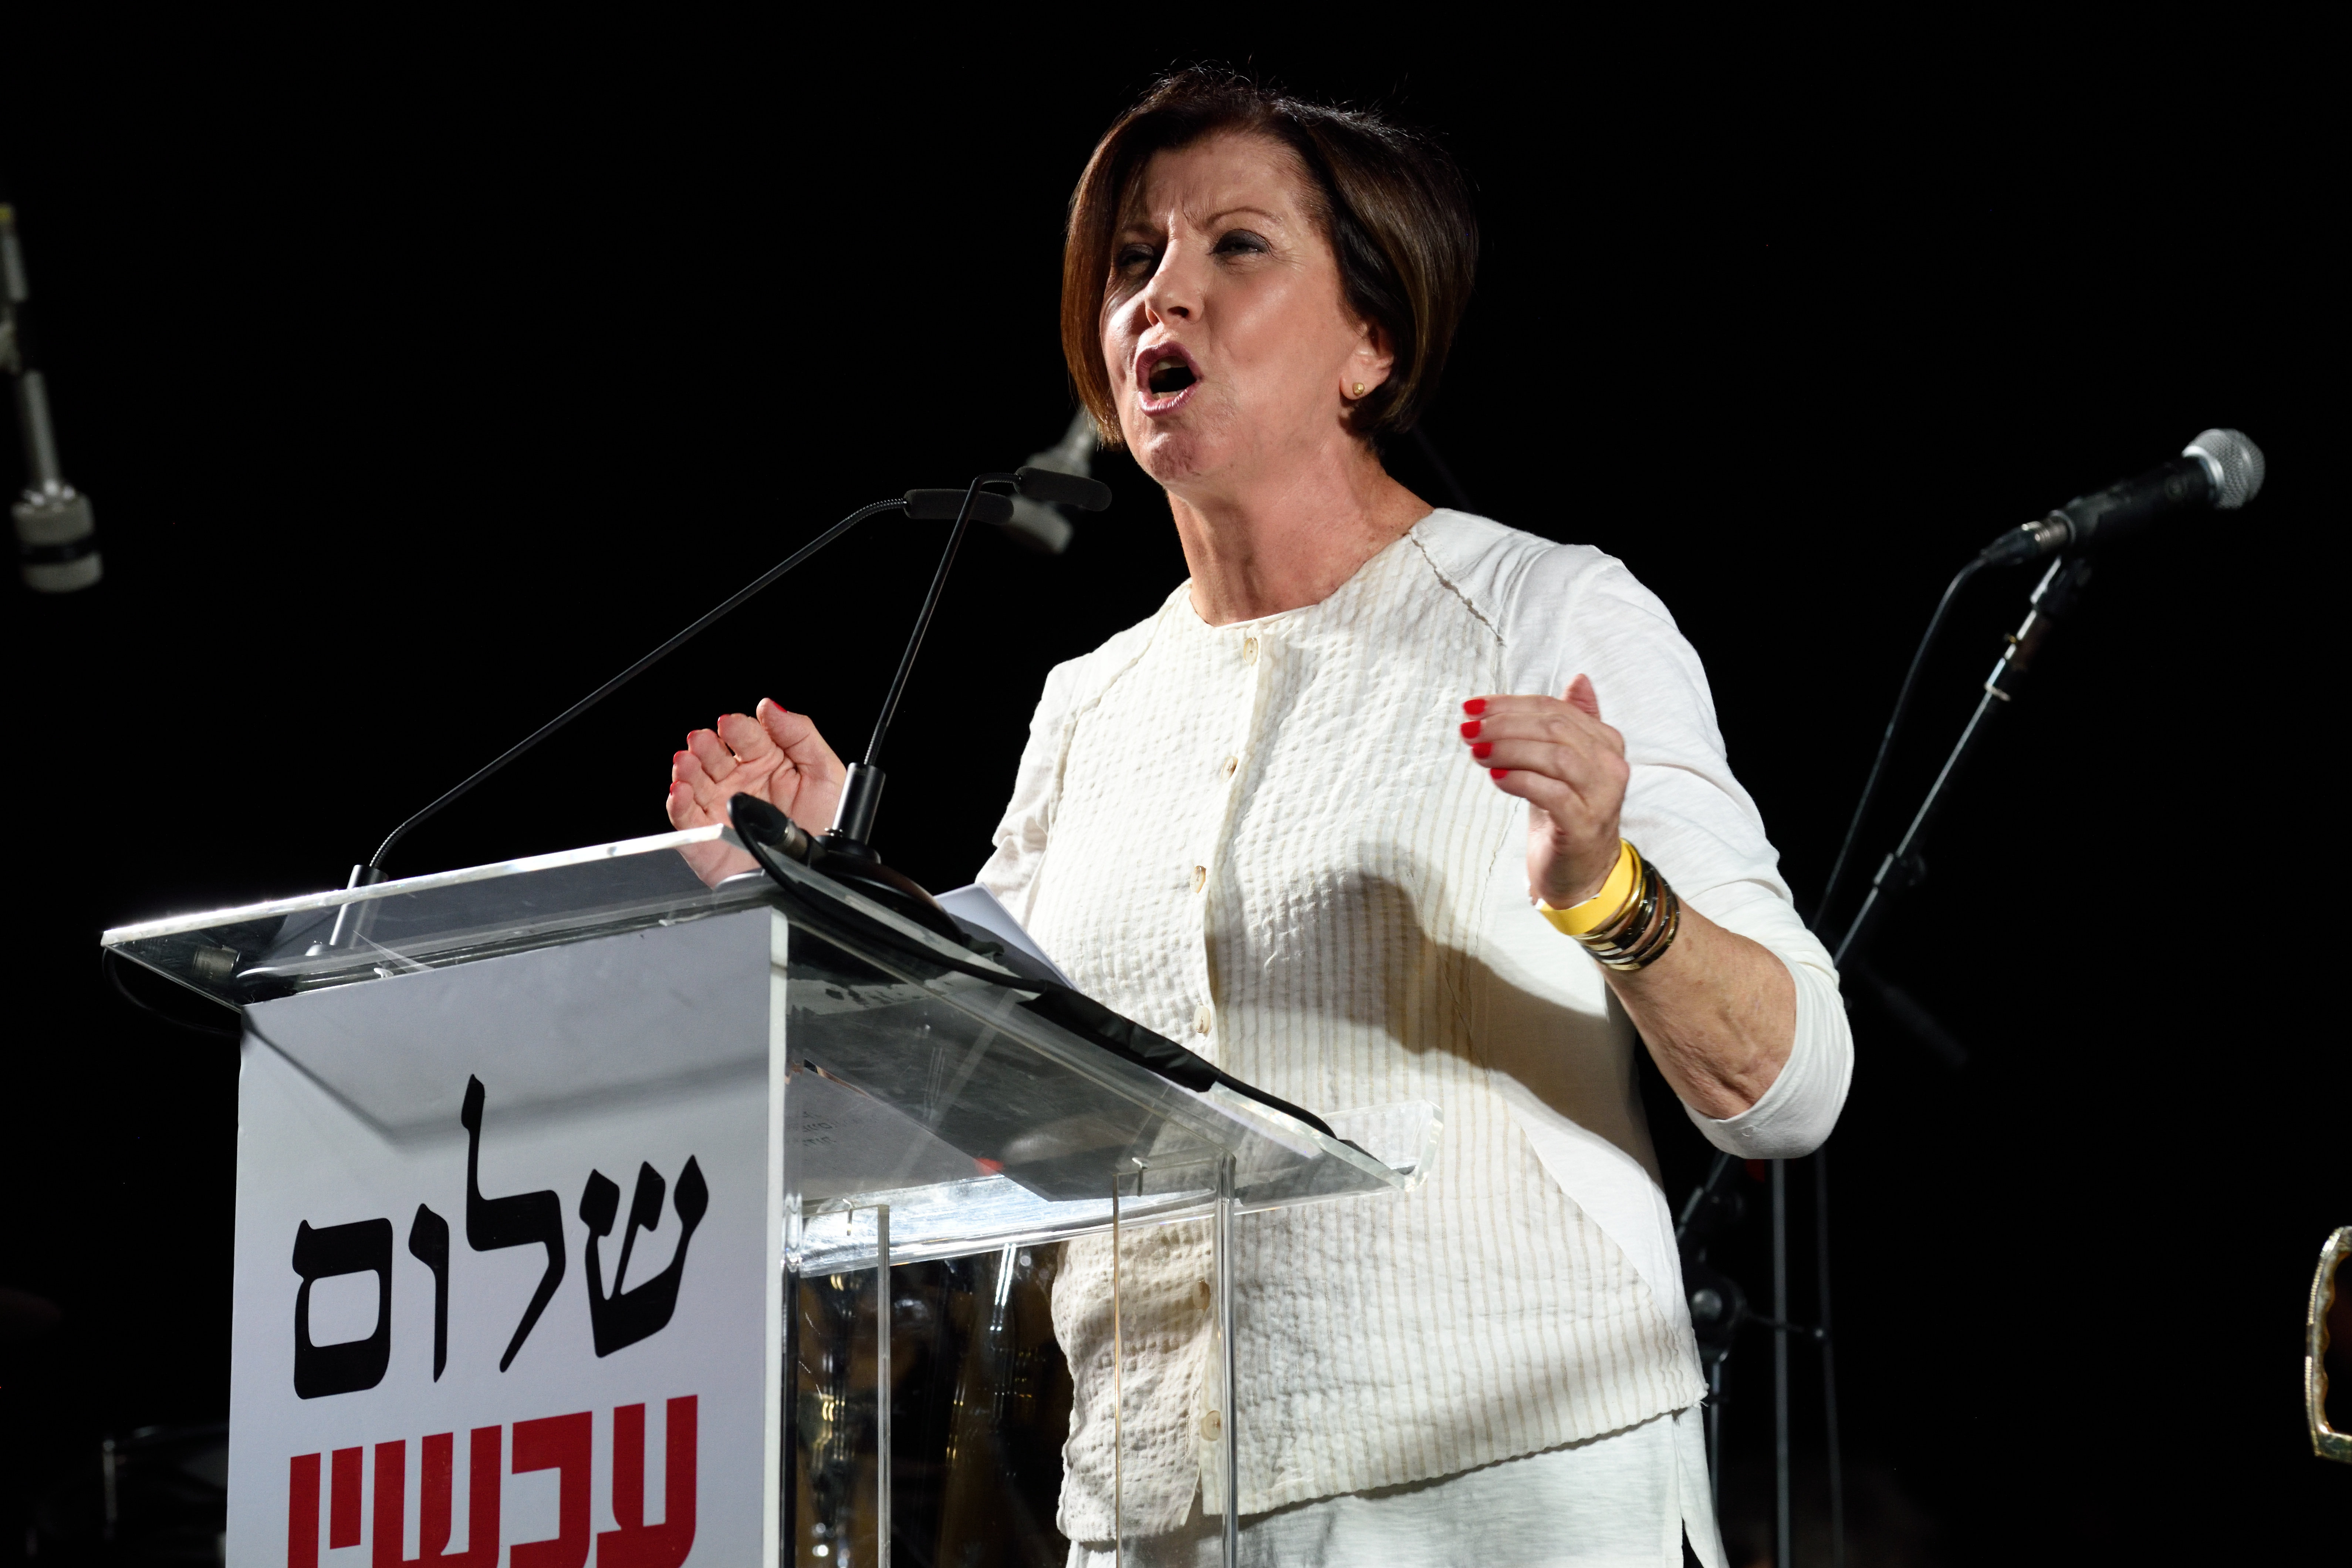 Meretz chief promises to quit politics if she fails to open party ...